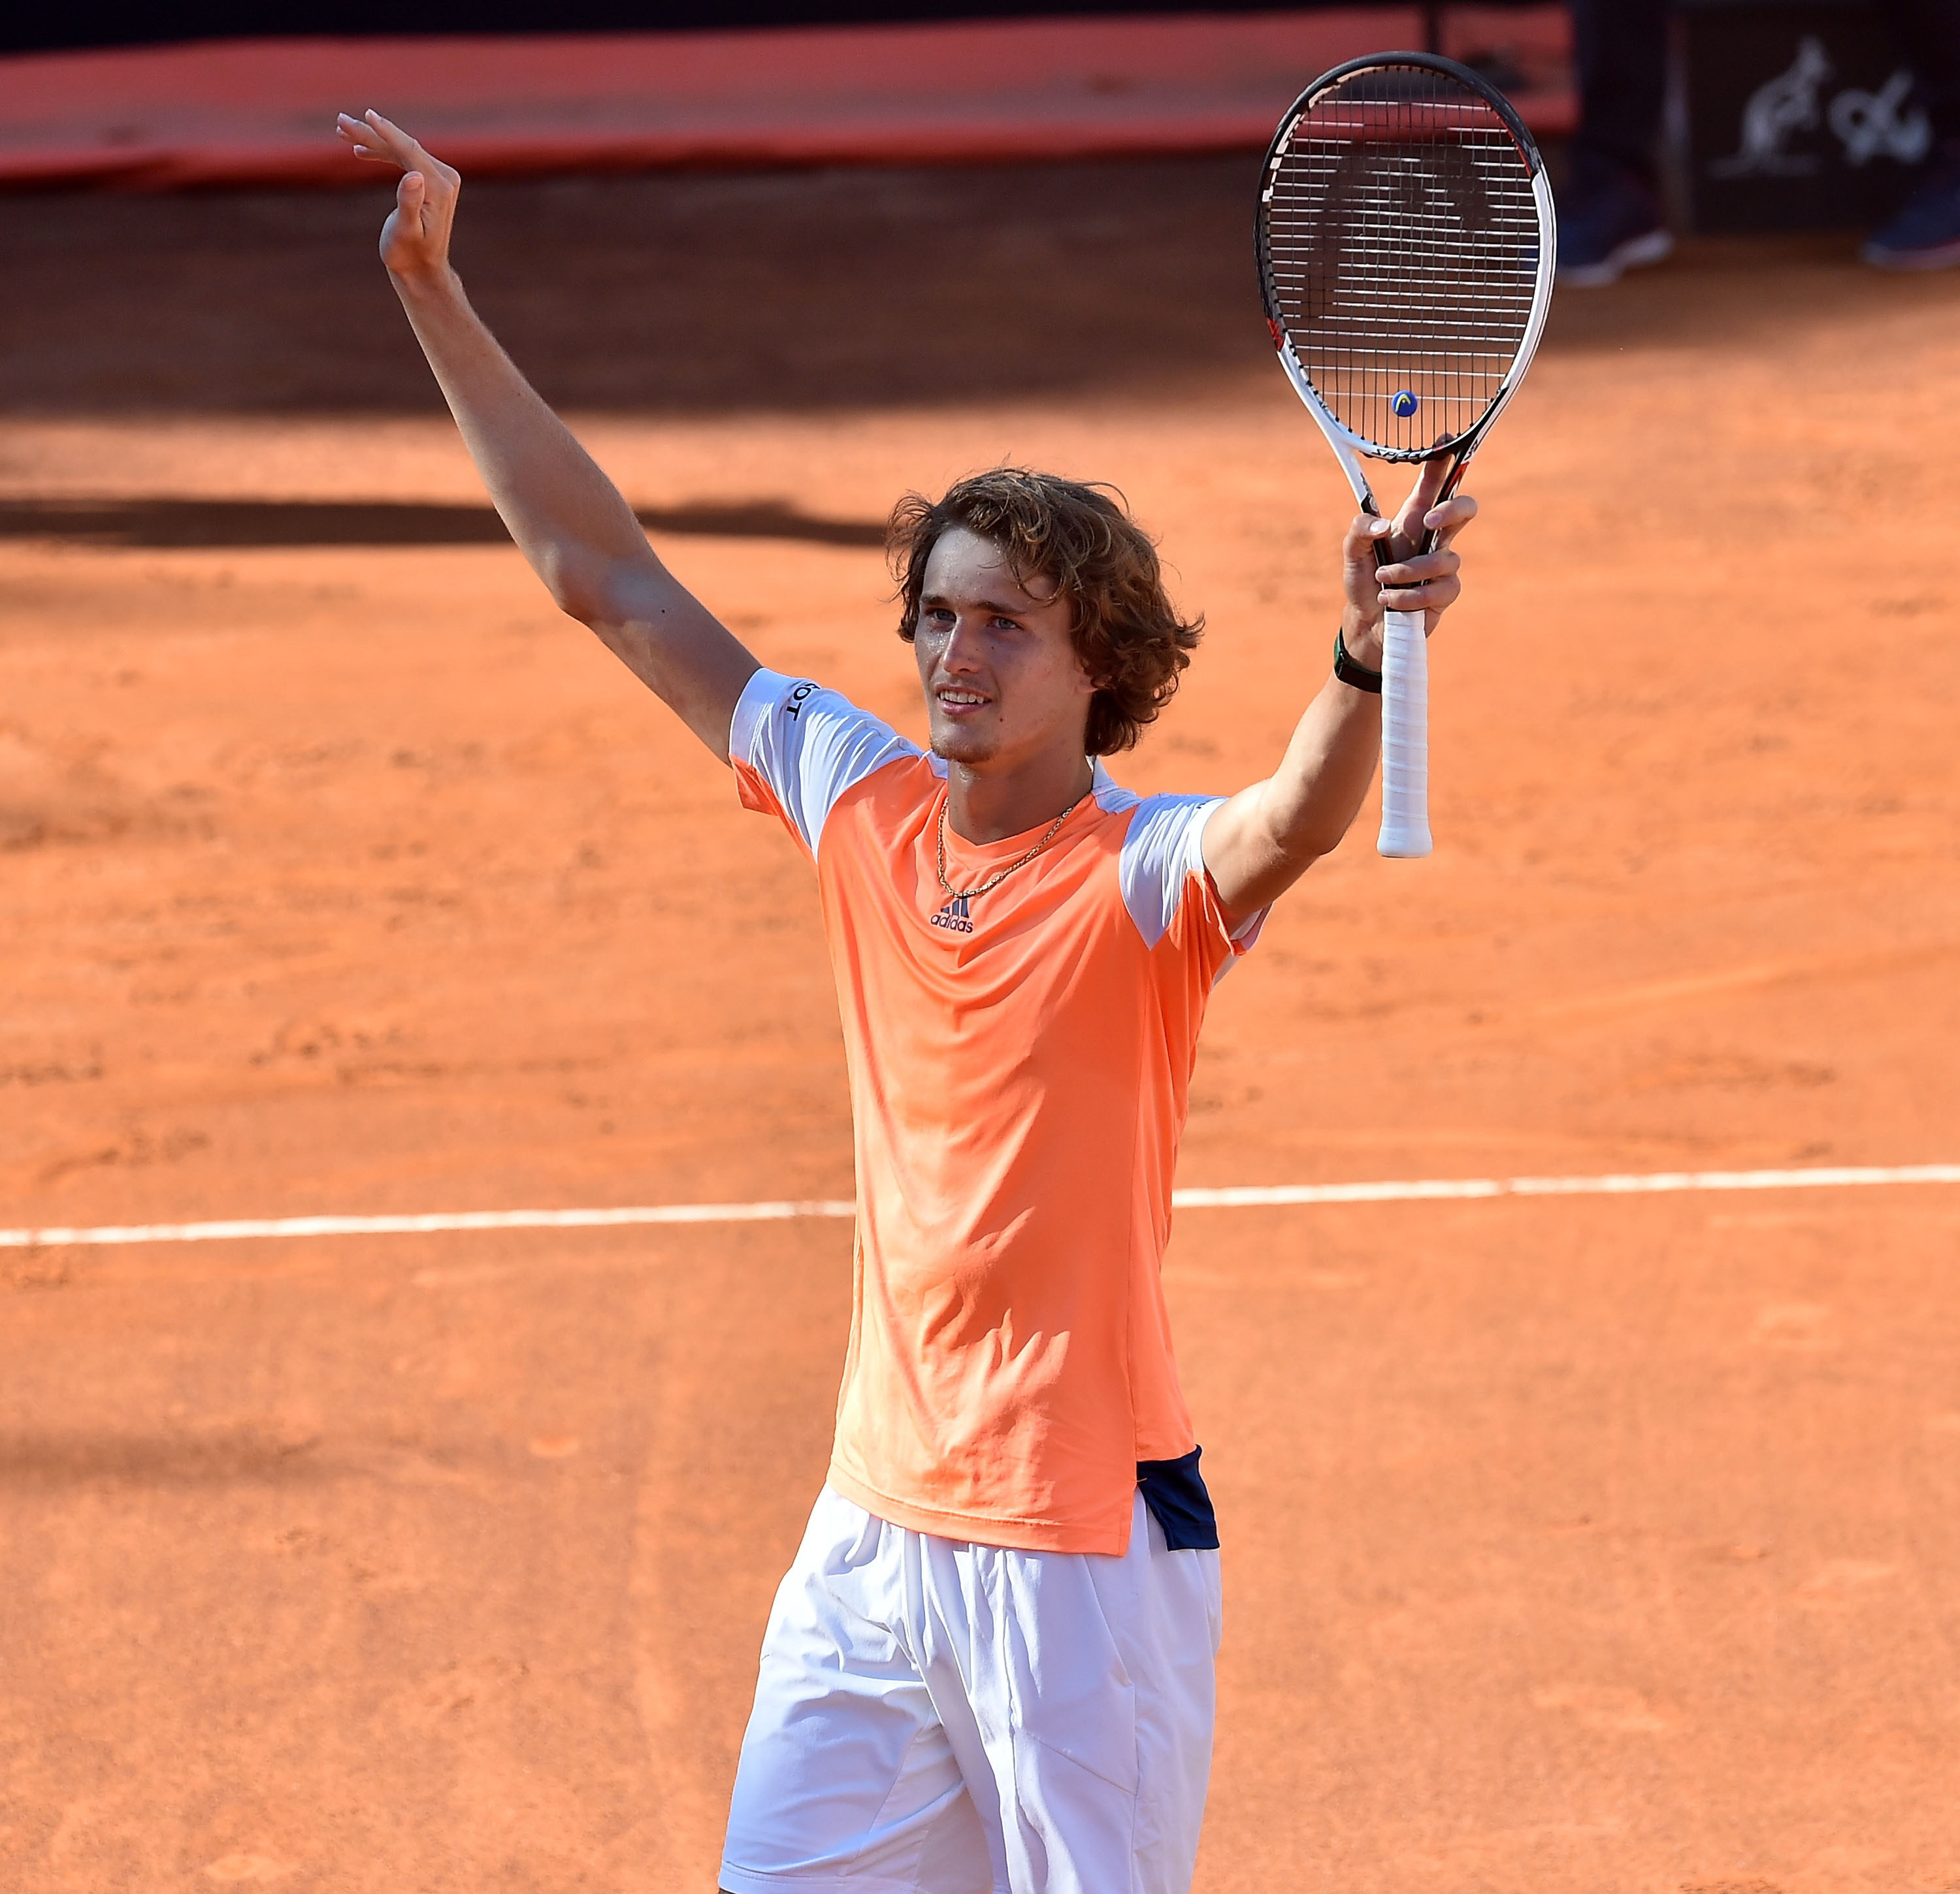 ROME, ITALY - MAY 21: Alexander Zverev of Germany celebrates after winning the ATP Singles Final match between Alexander Zverev of Germany and Novak Djokovic of Serbia during The Internazionali BNL d'Italia 2017 - Day Eight at Foro Italico on May 21, 2017 in Rome, Italy. (Photo by Giuseppe Bellini/Getty Images)